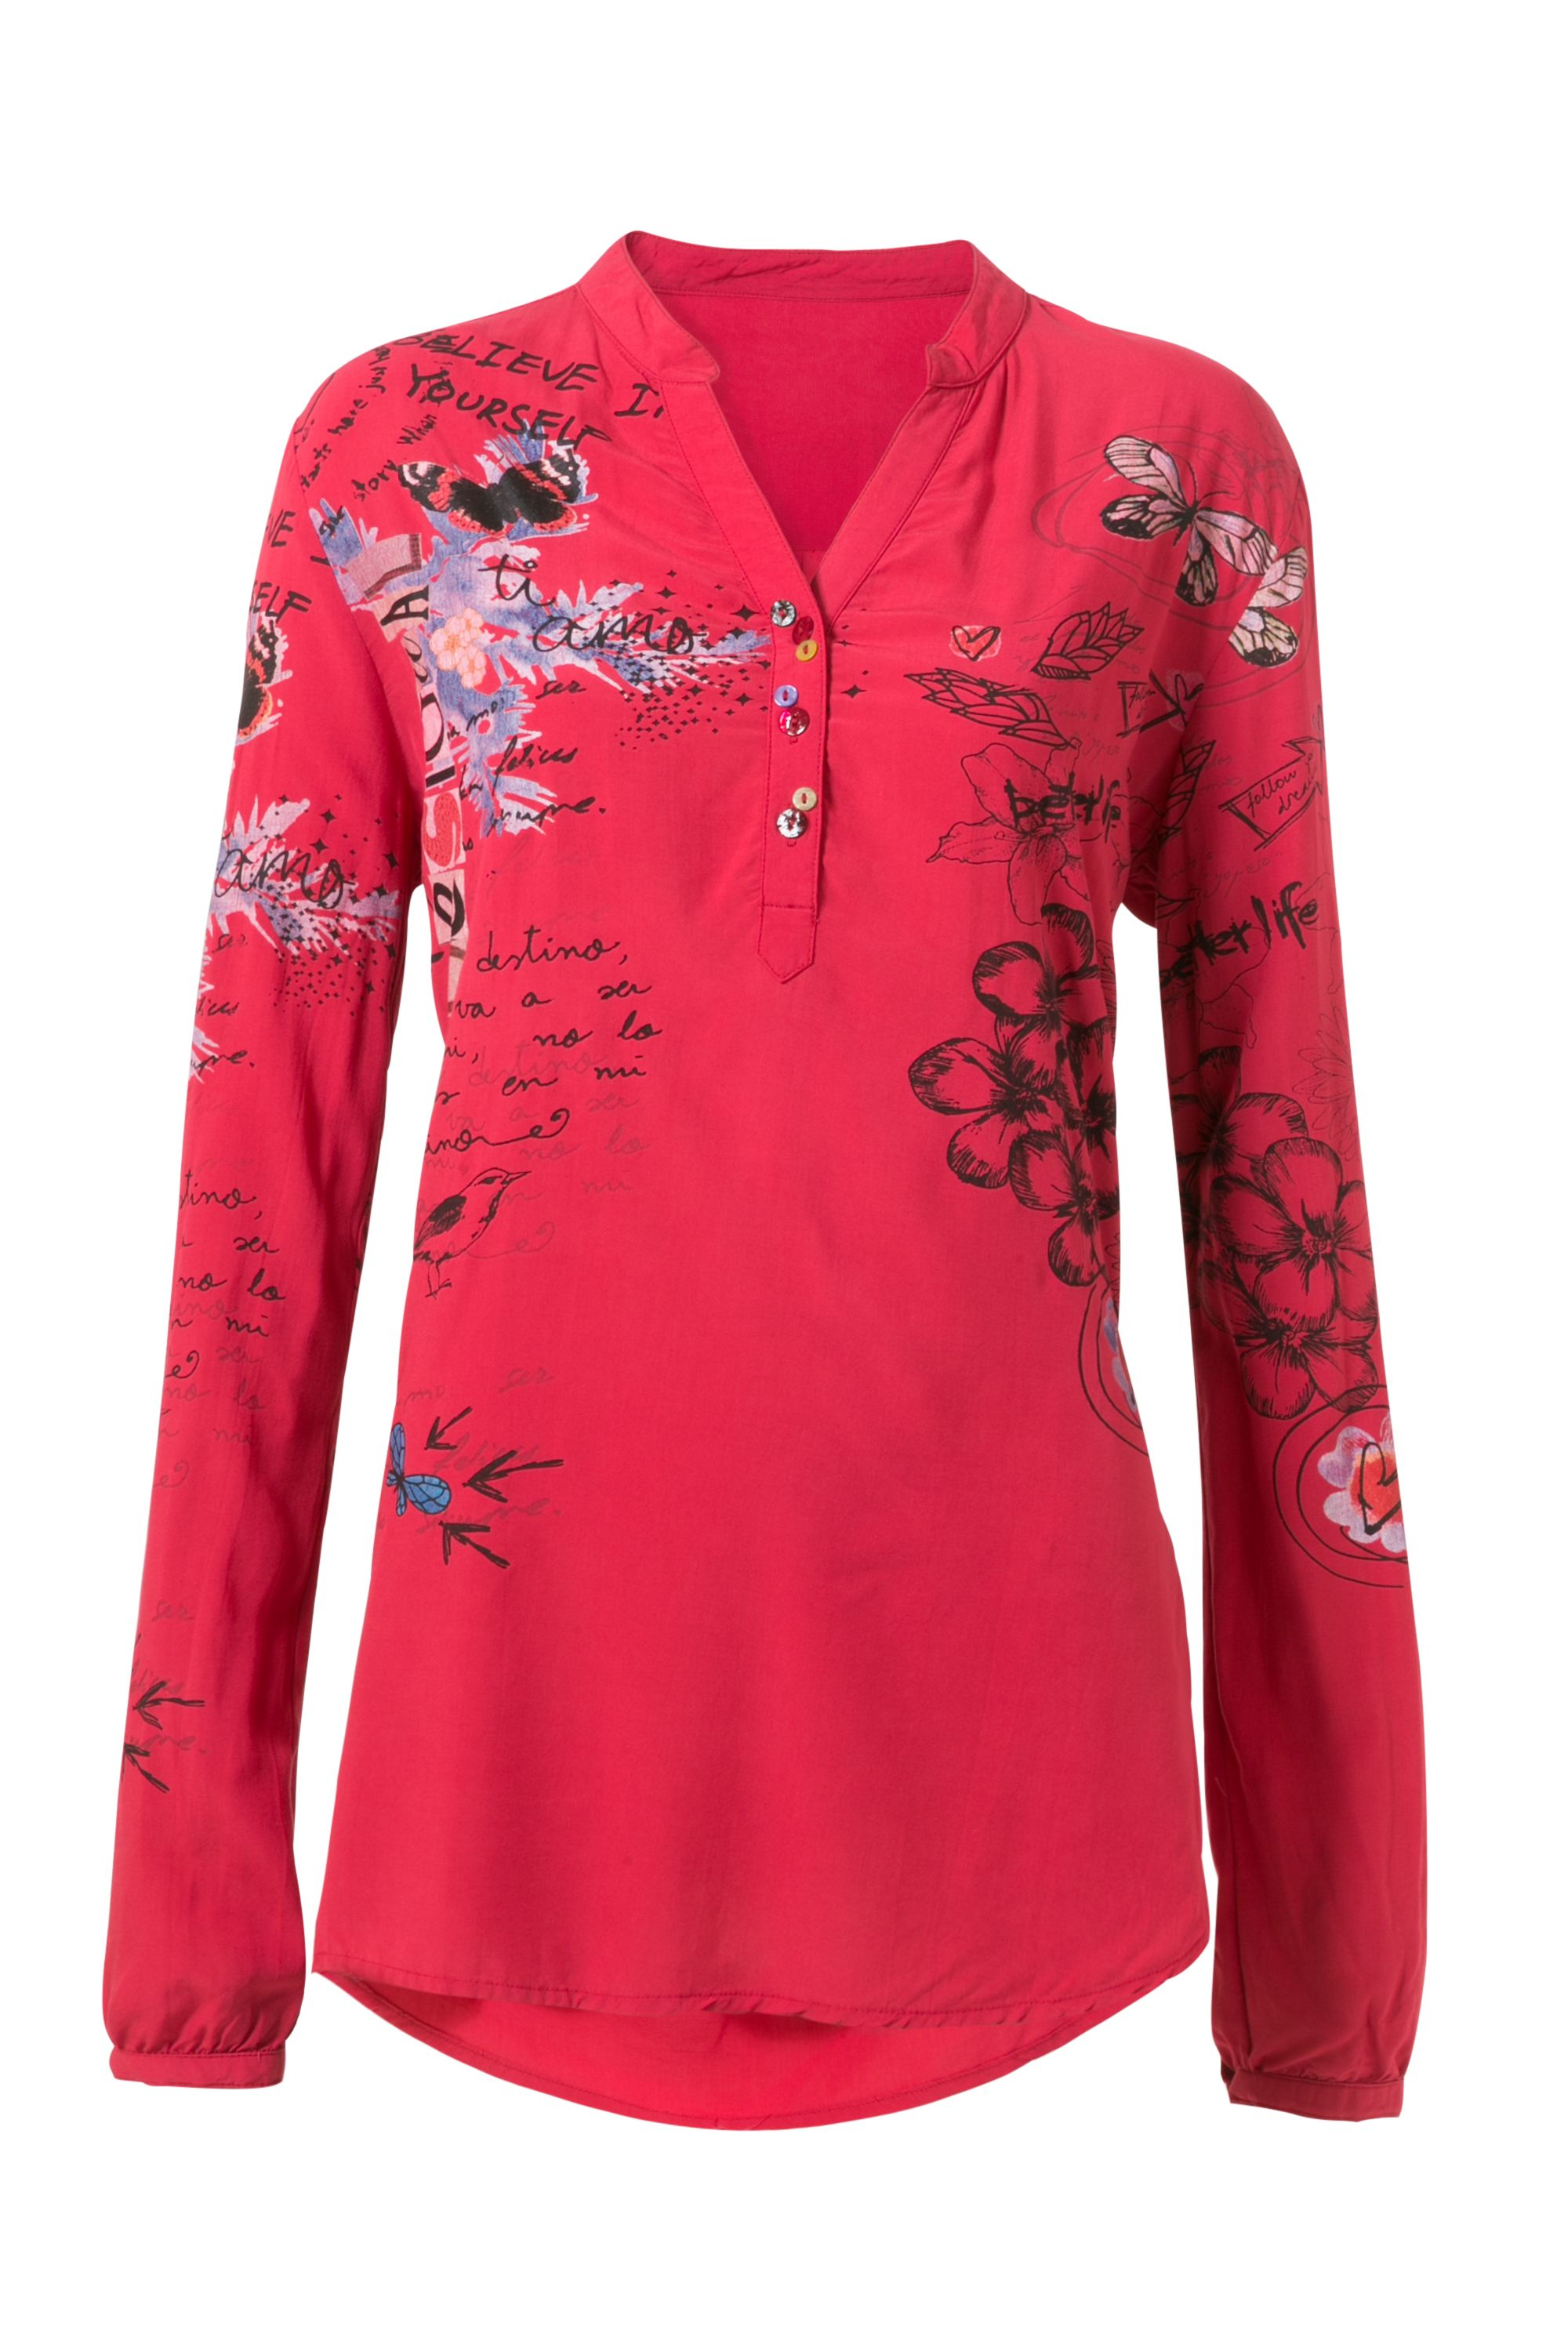 Desigual Lisa Blouse, Red